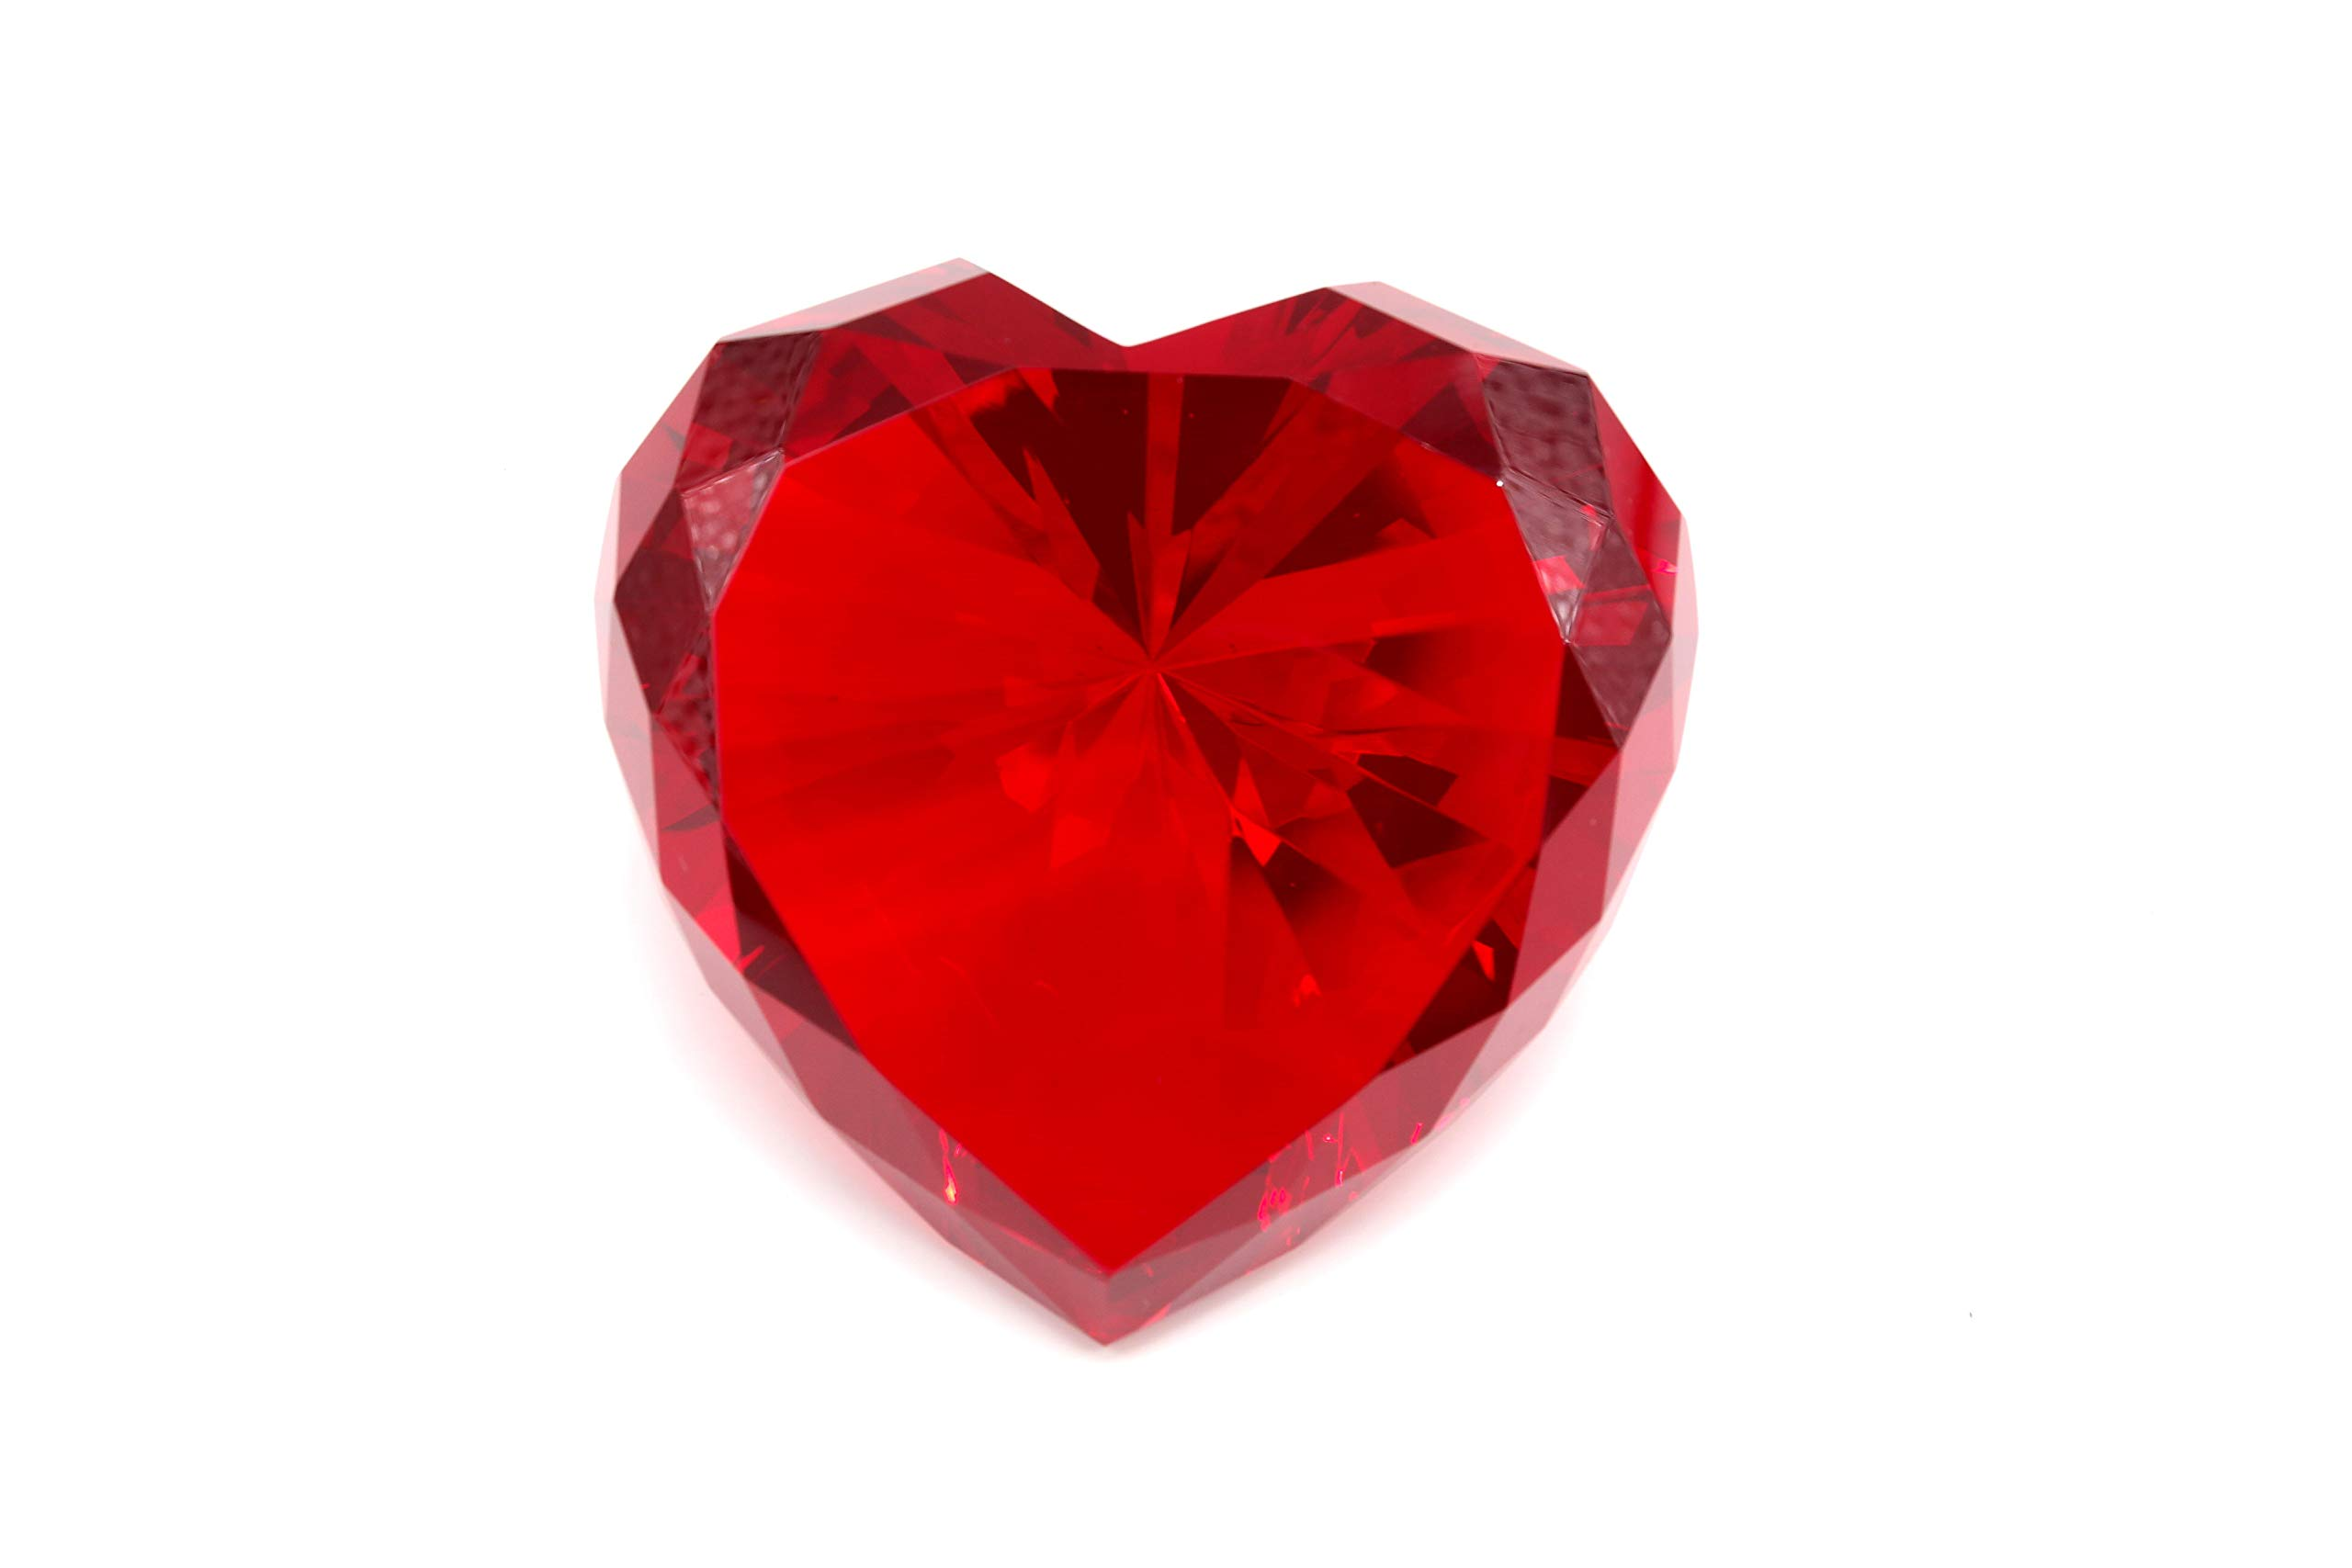 Tripact 80mm Red Color Crystal Glass Diamond Shaped Crystal Paperweight by Tripact Inc